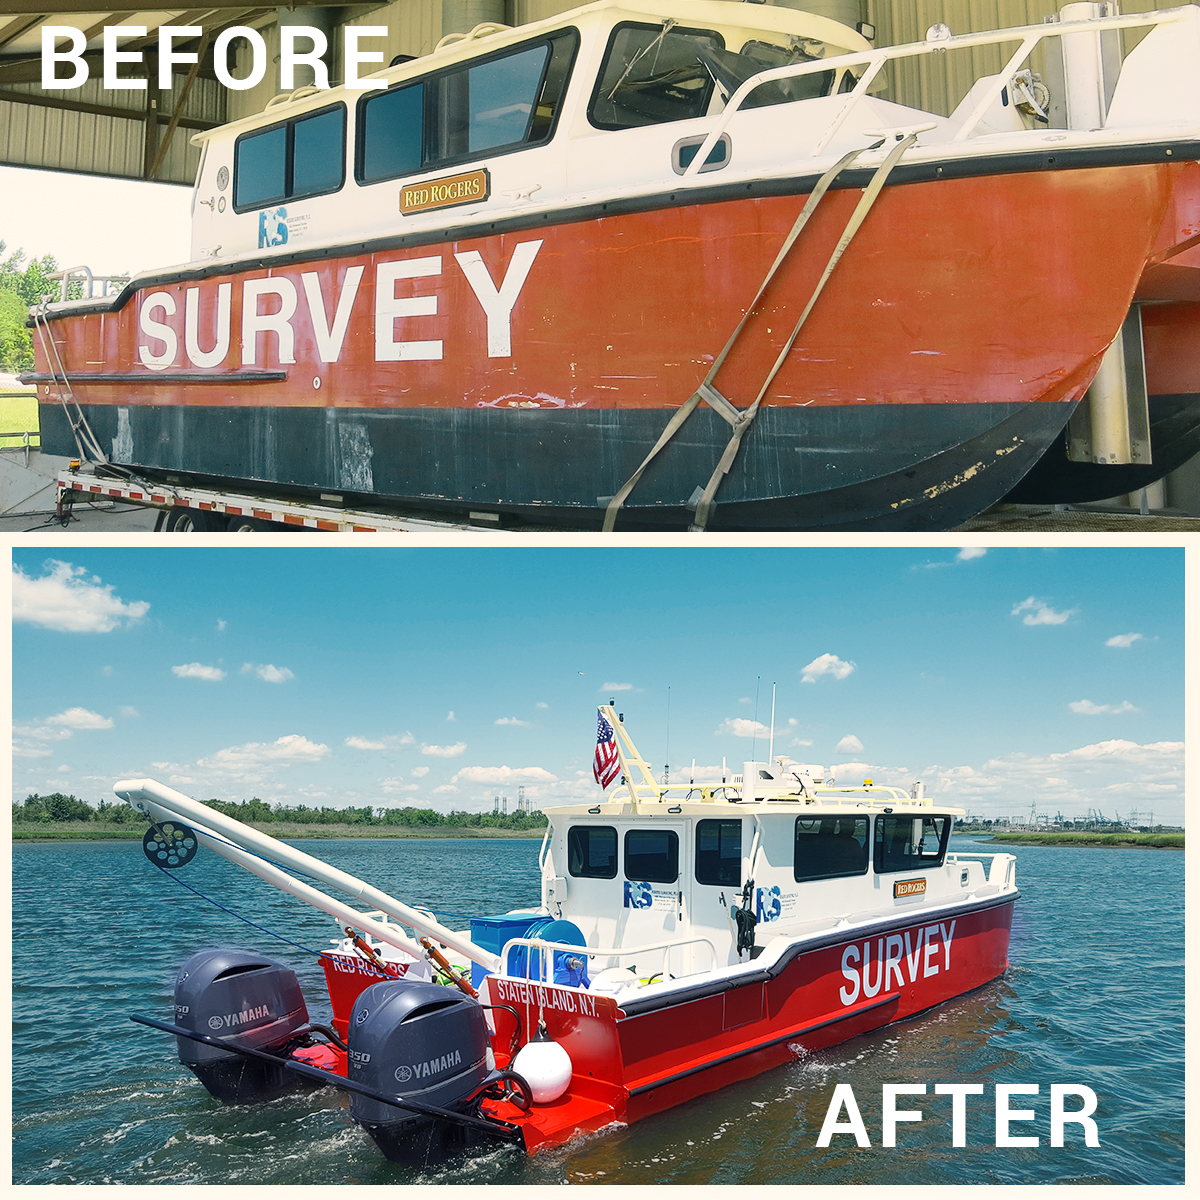 before and after photos of refurbished survey boat